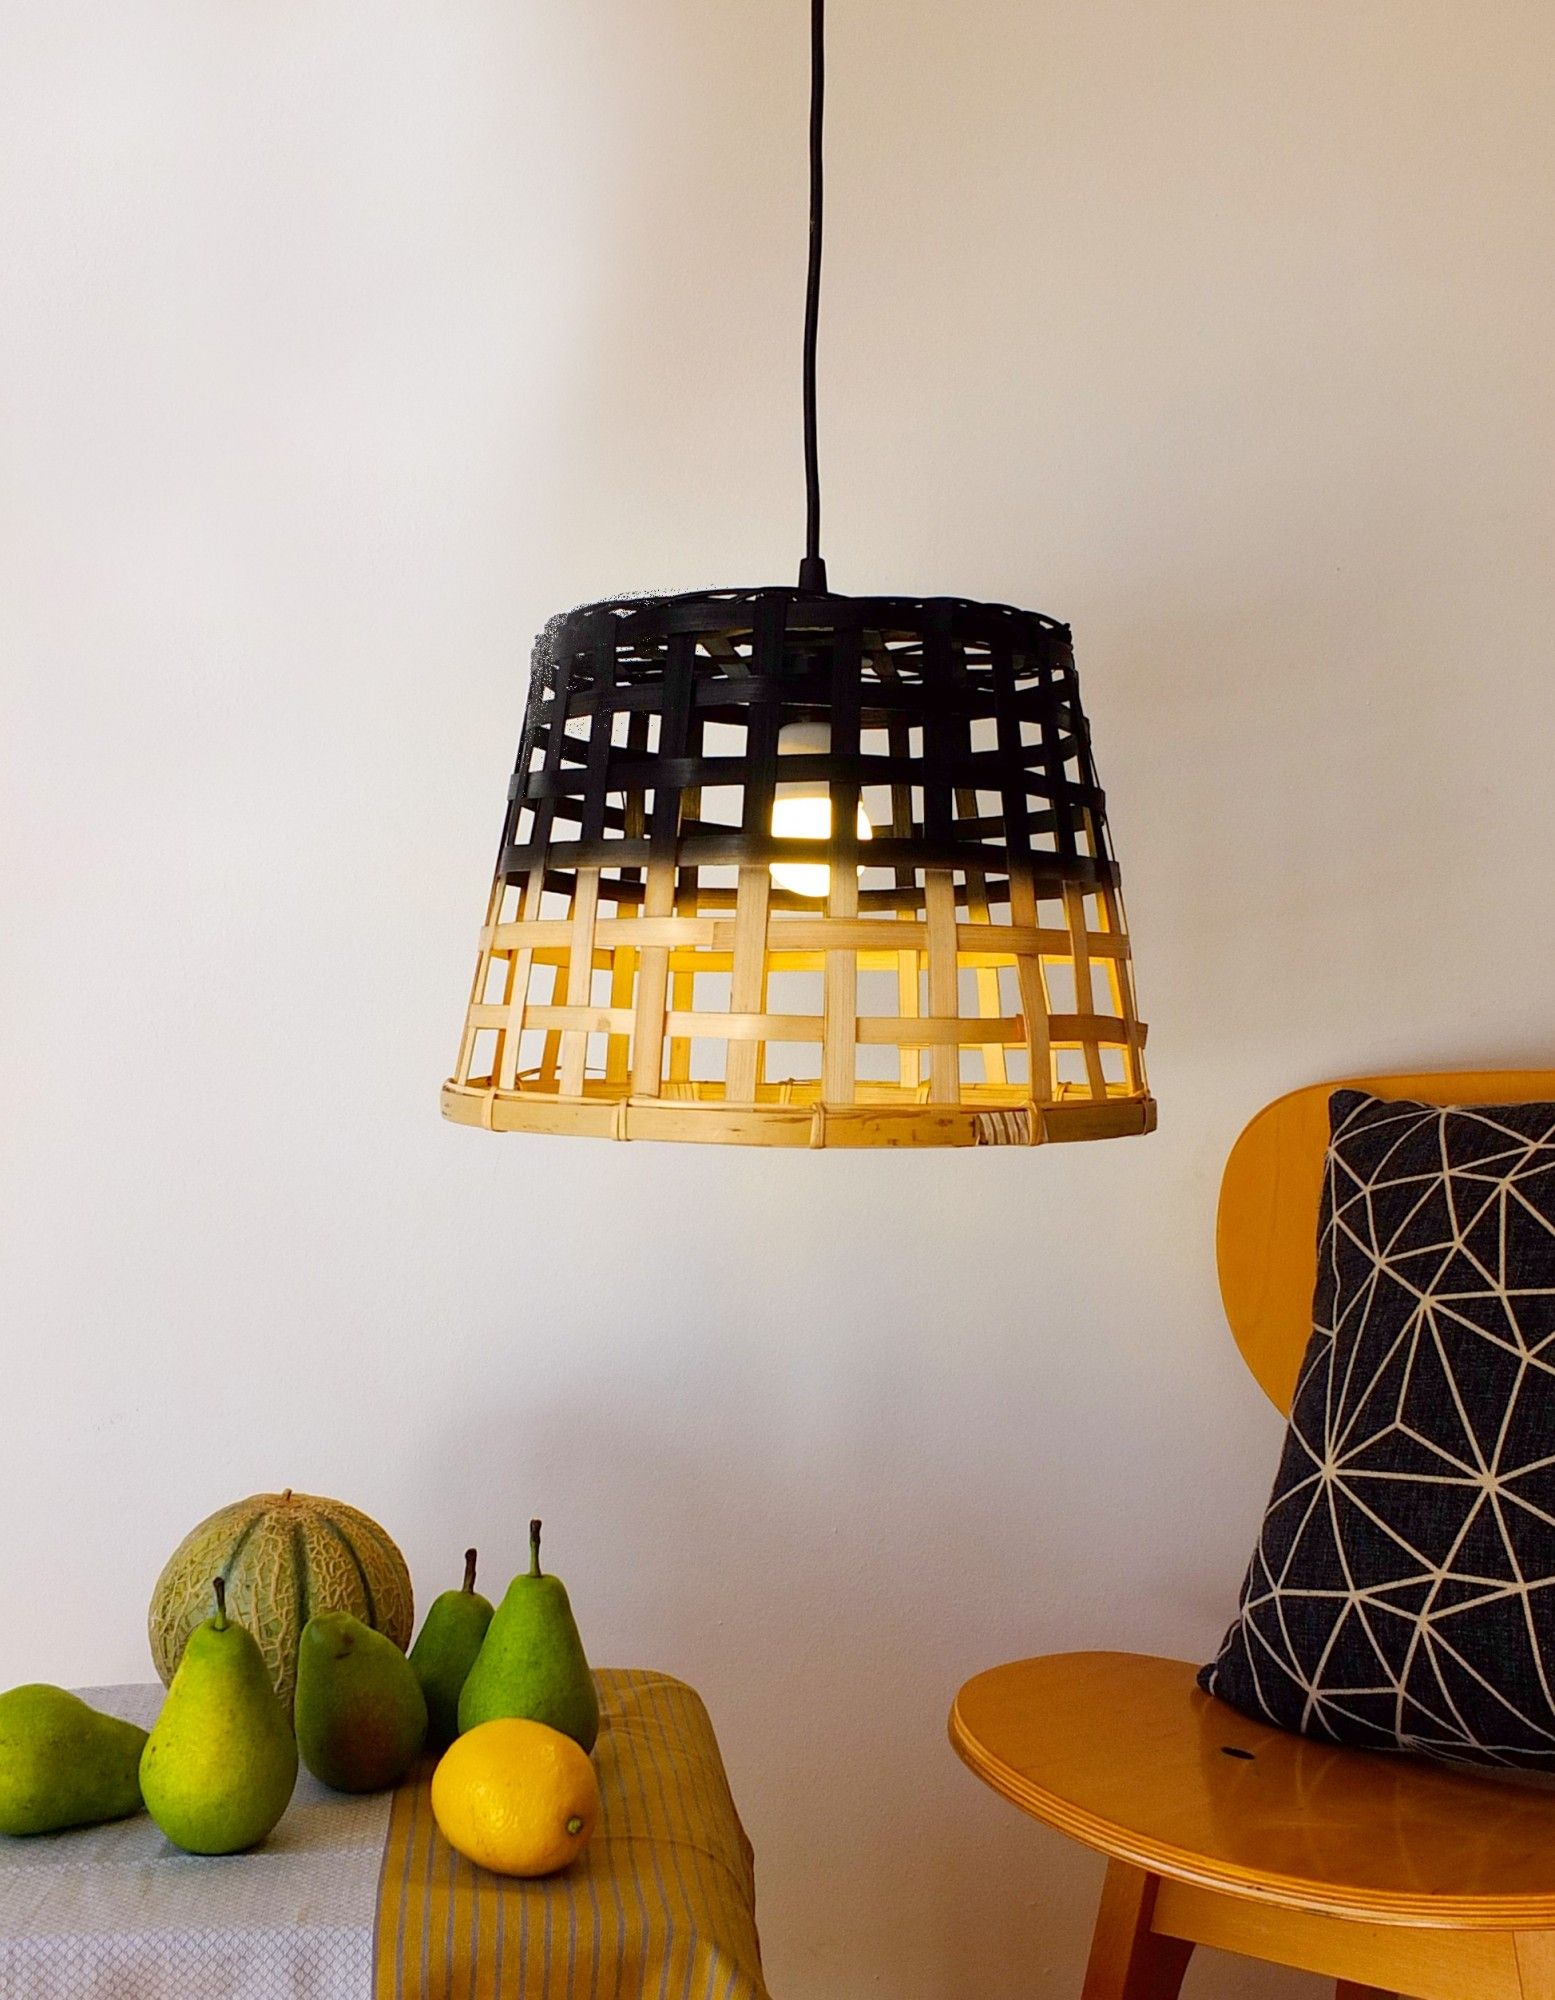 DIY IKEA GADDIS lamp lampe result DIY Pinterest